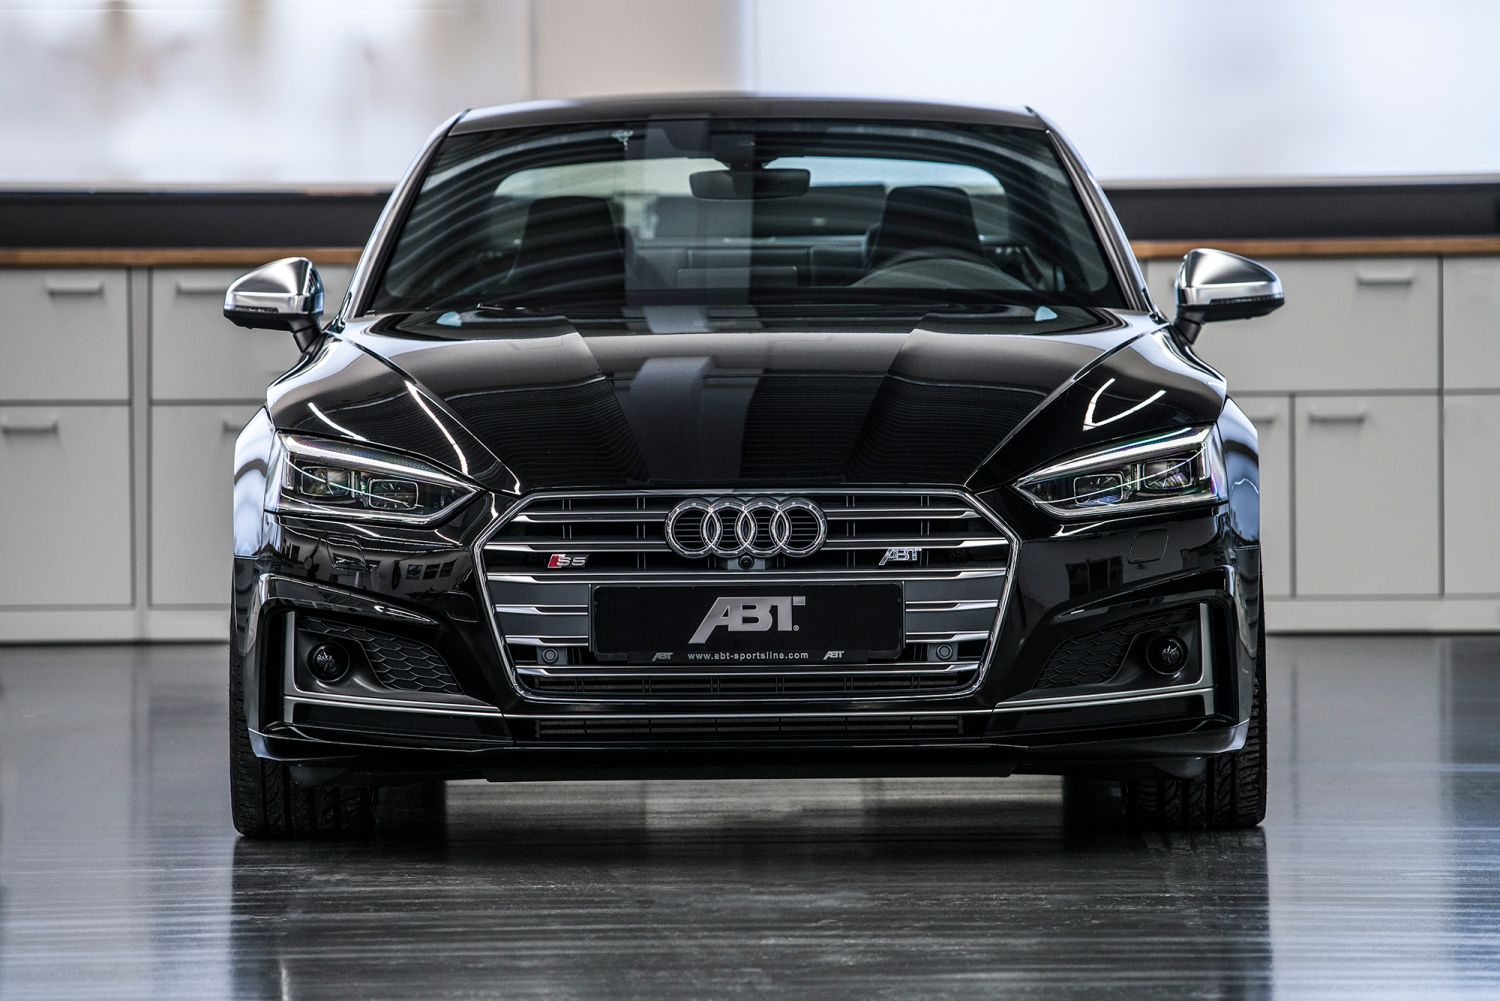 ABT Sportsline Brings 20% More Dynamism to 2018 Audi S5 ...